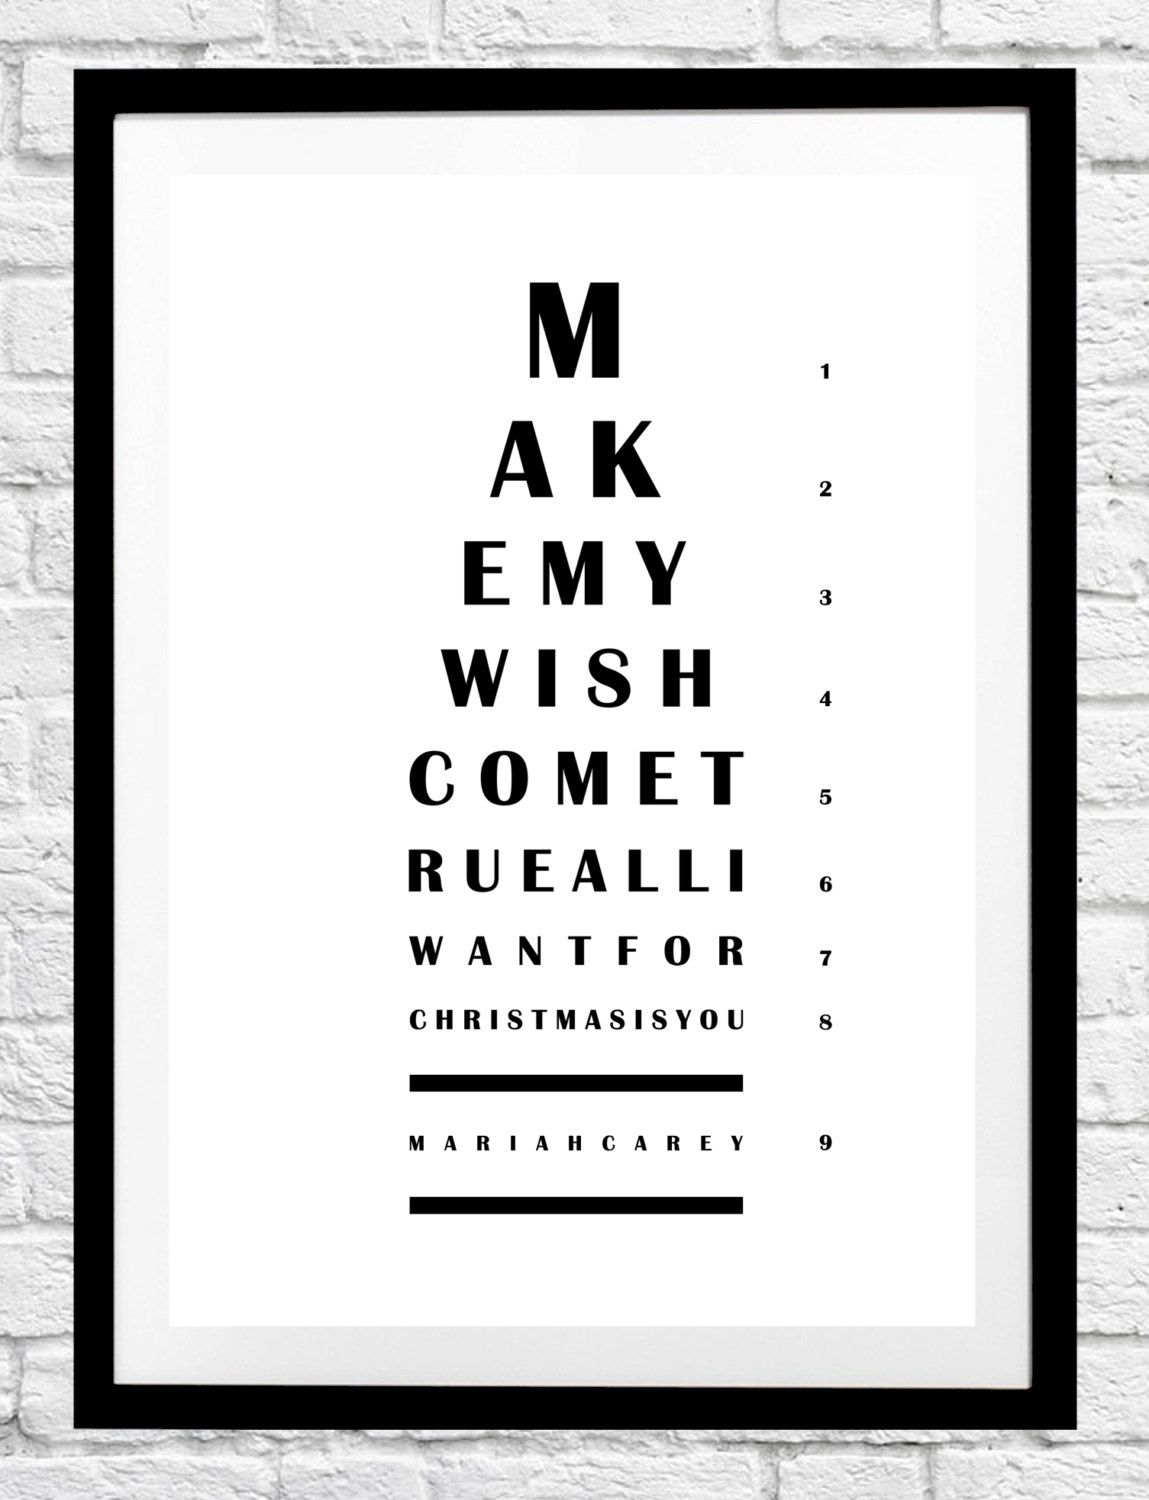 All I Want For Christmas Is You Eye Chart Mariah Carey Minimalist Poster Print Original Home Decor Wall Art Gift Ide Eye Chart Lyric Prints Poster Prints